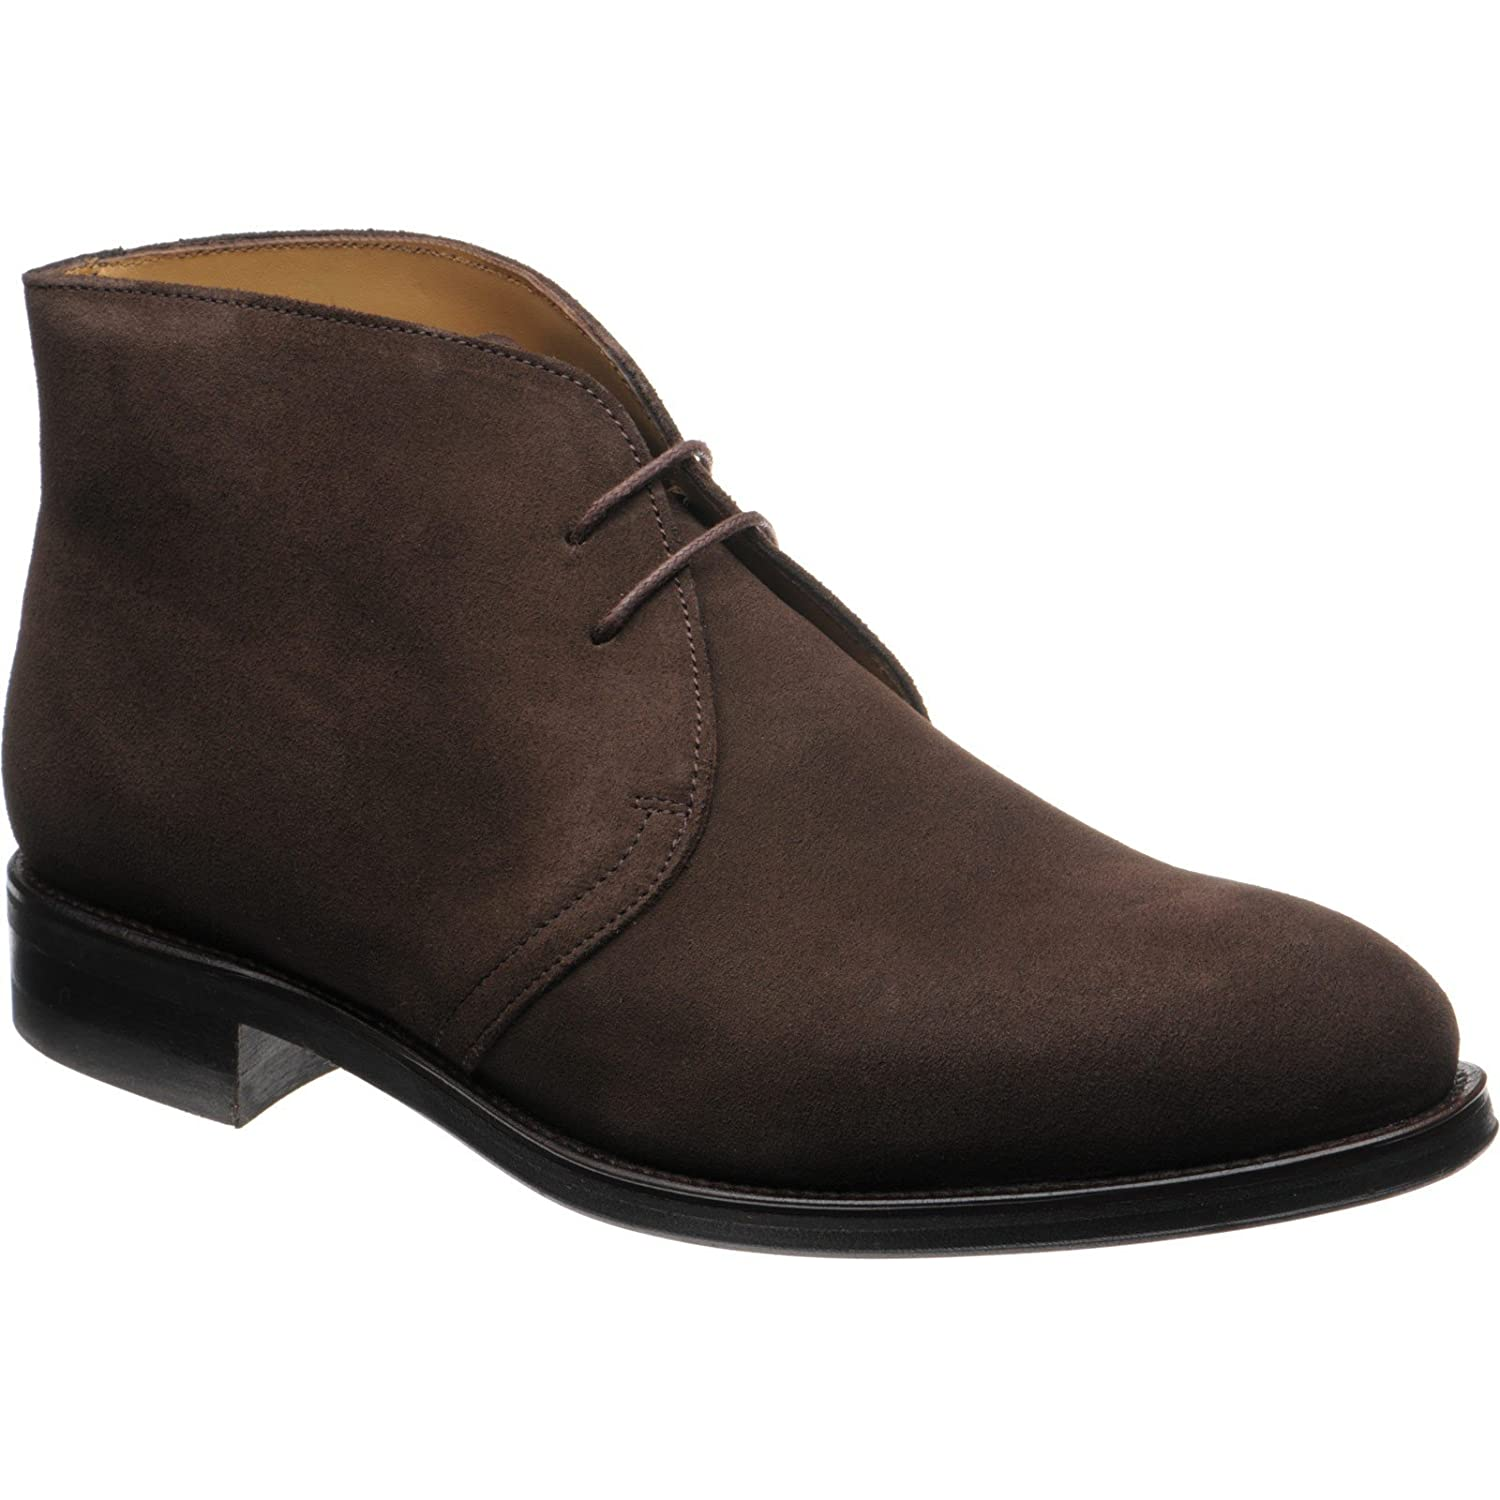 Herring Canterbury Rubber-Soled Chukka Boots in Brown Suede